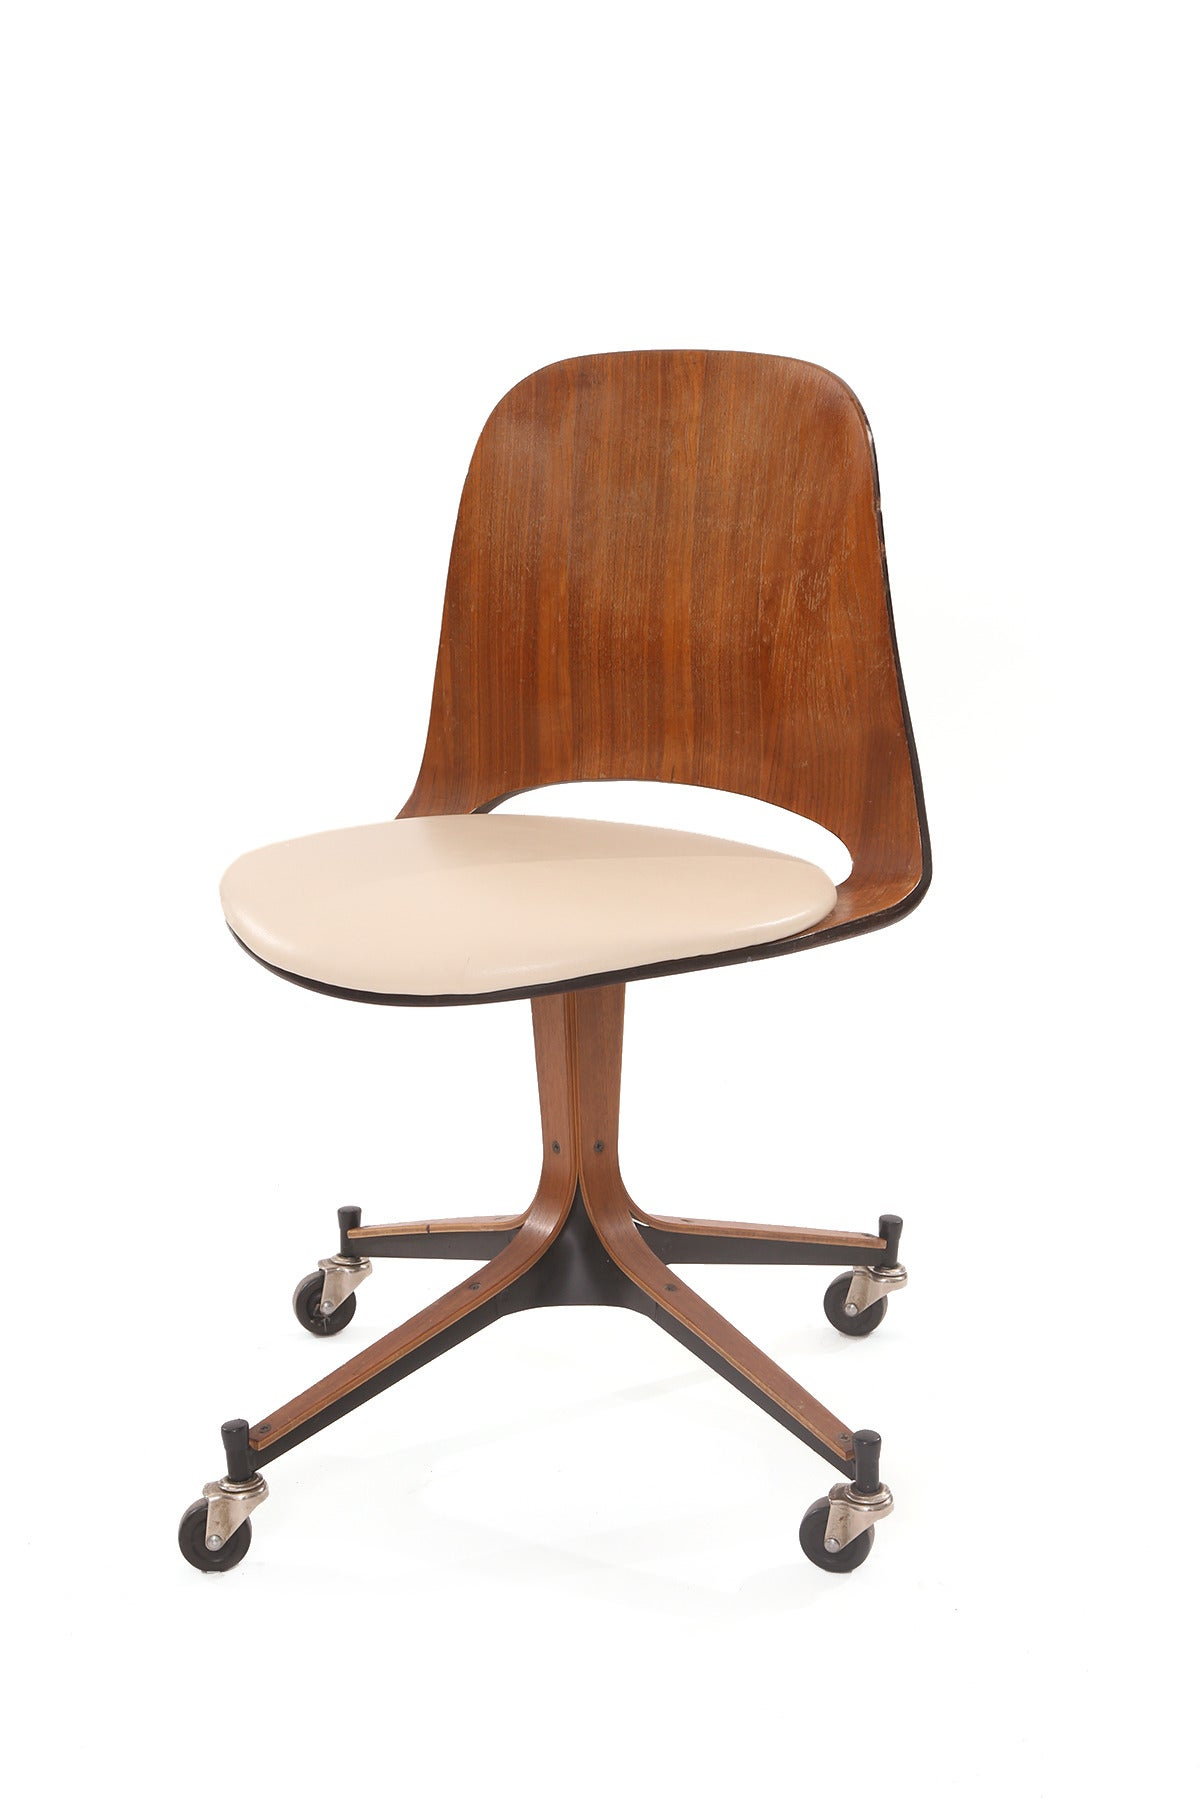 George Mulhauser Plycraft Desk Chair For Sale At 1stdibs